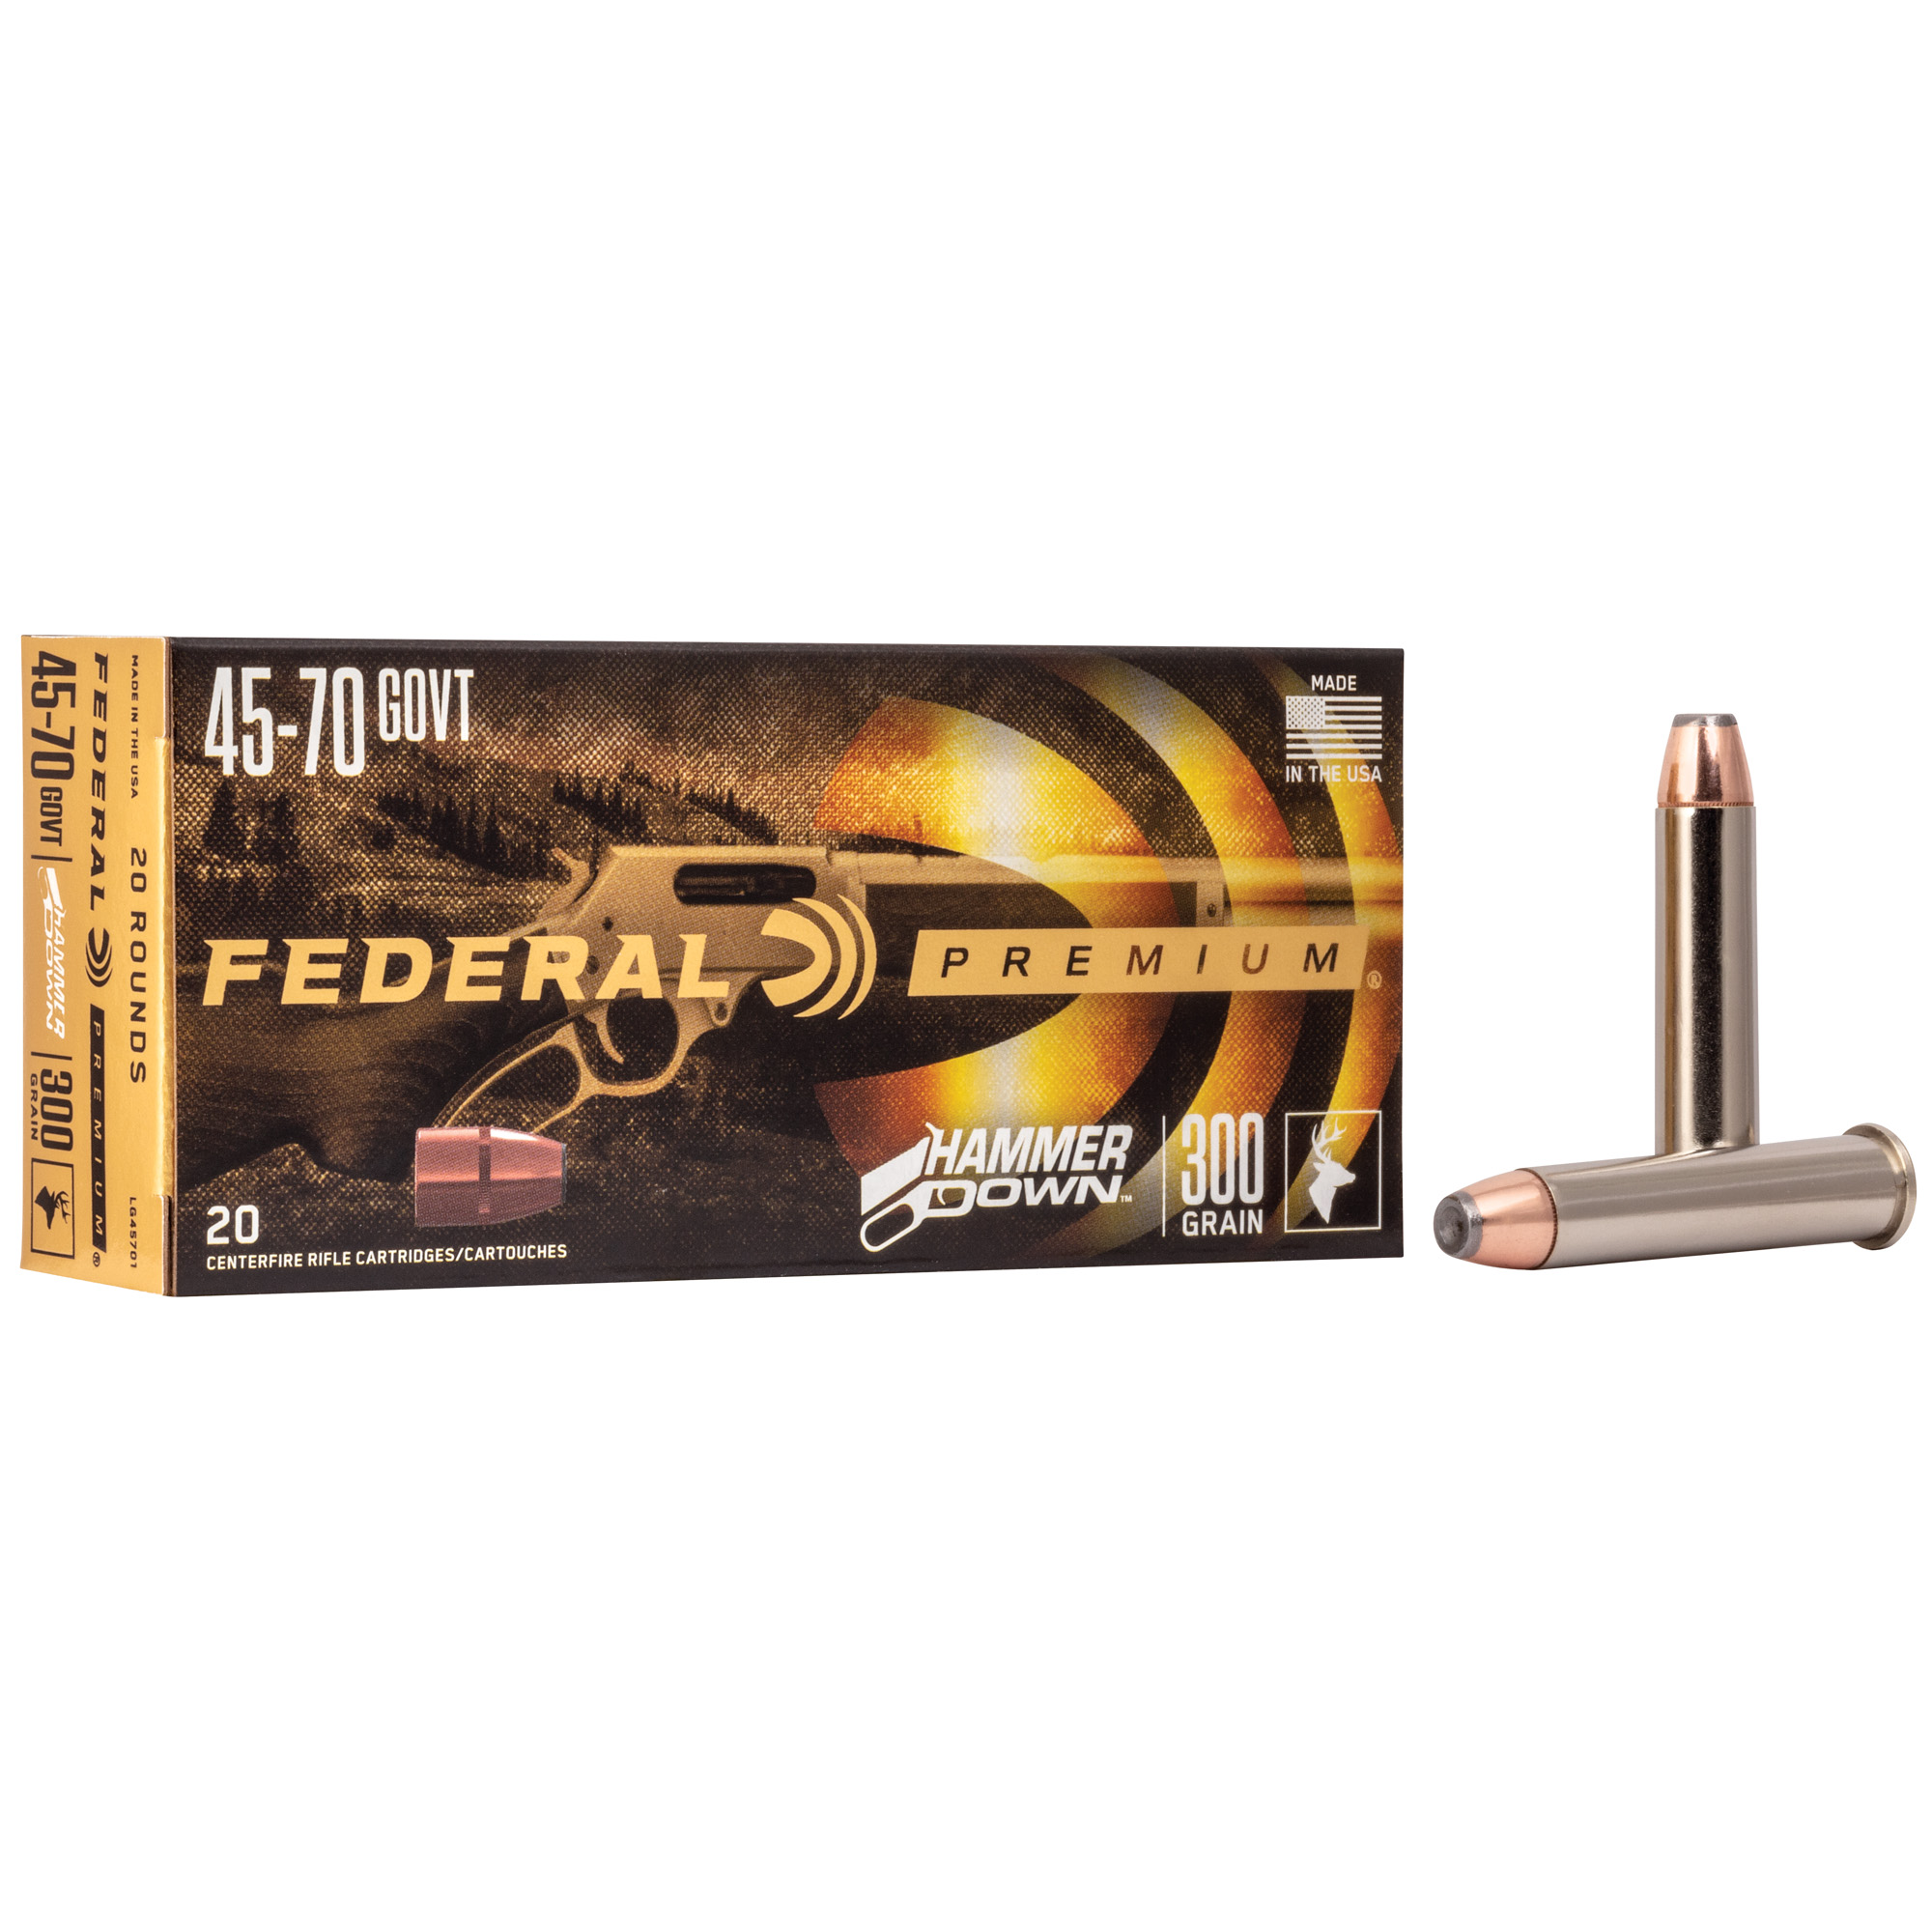 Federal Fed Hmr Dwn 45-70gvt 300gr Sp 20/200